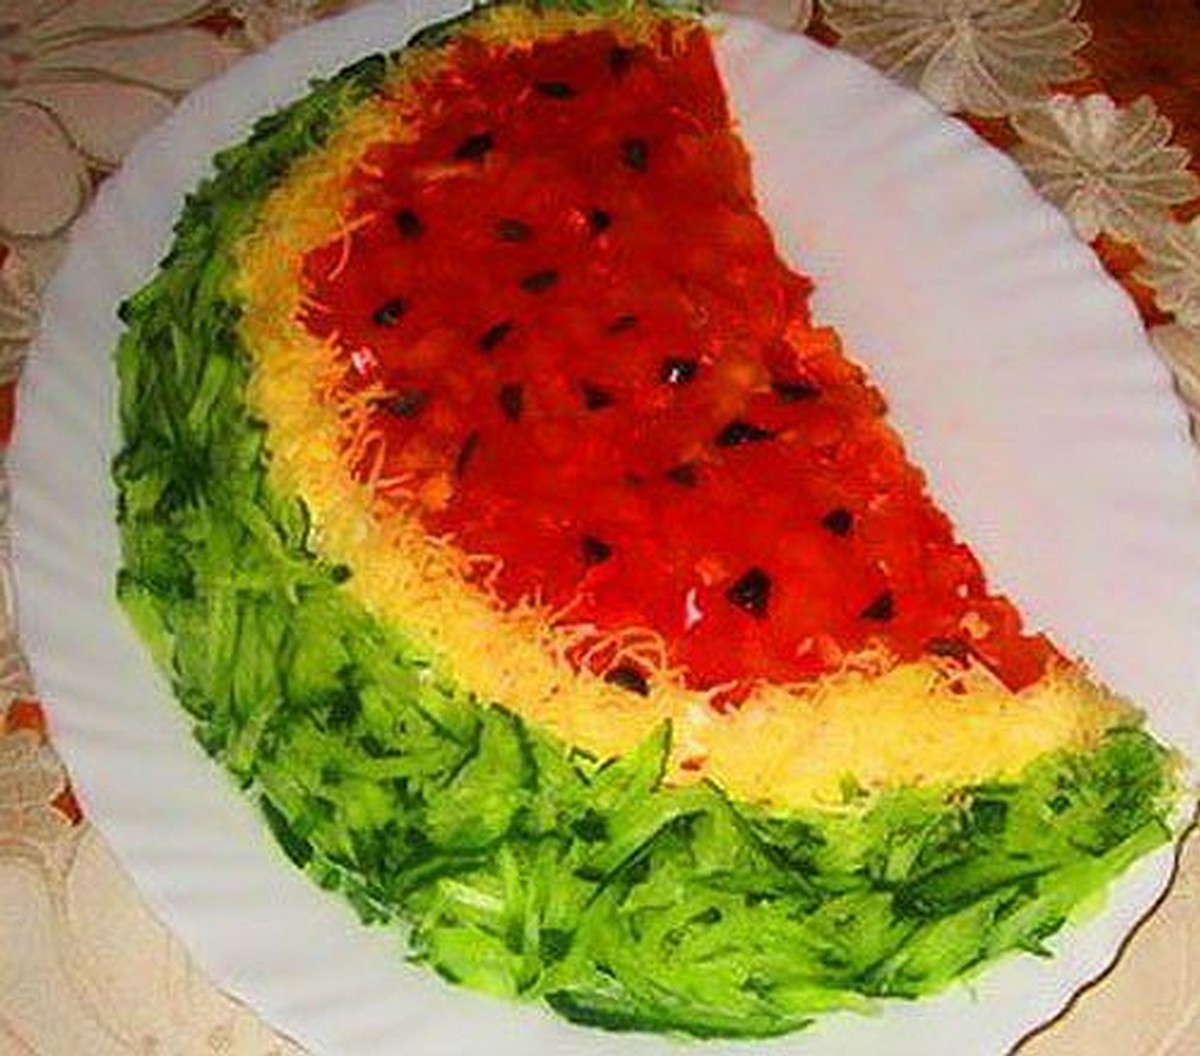 The Fake Watermelon Slice Salad Recipe